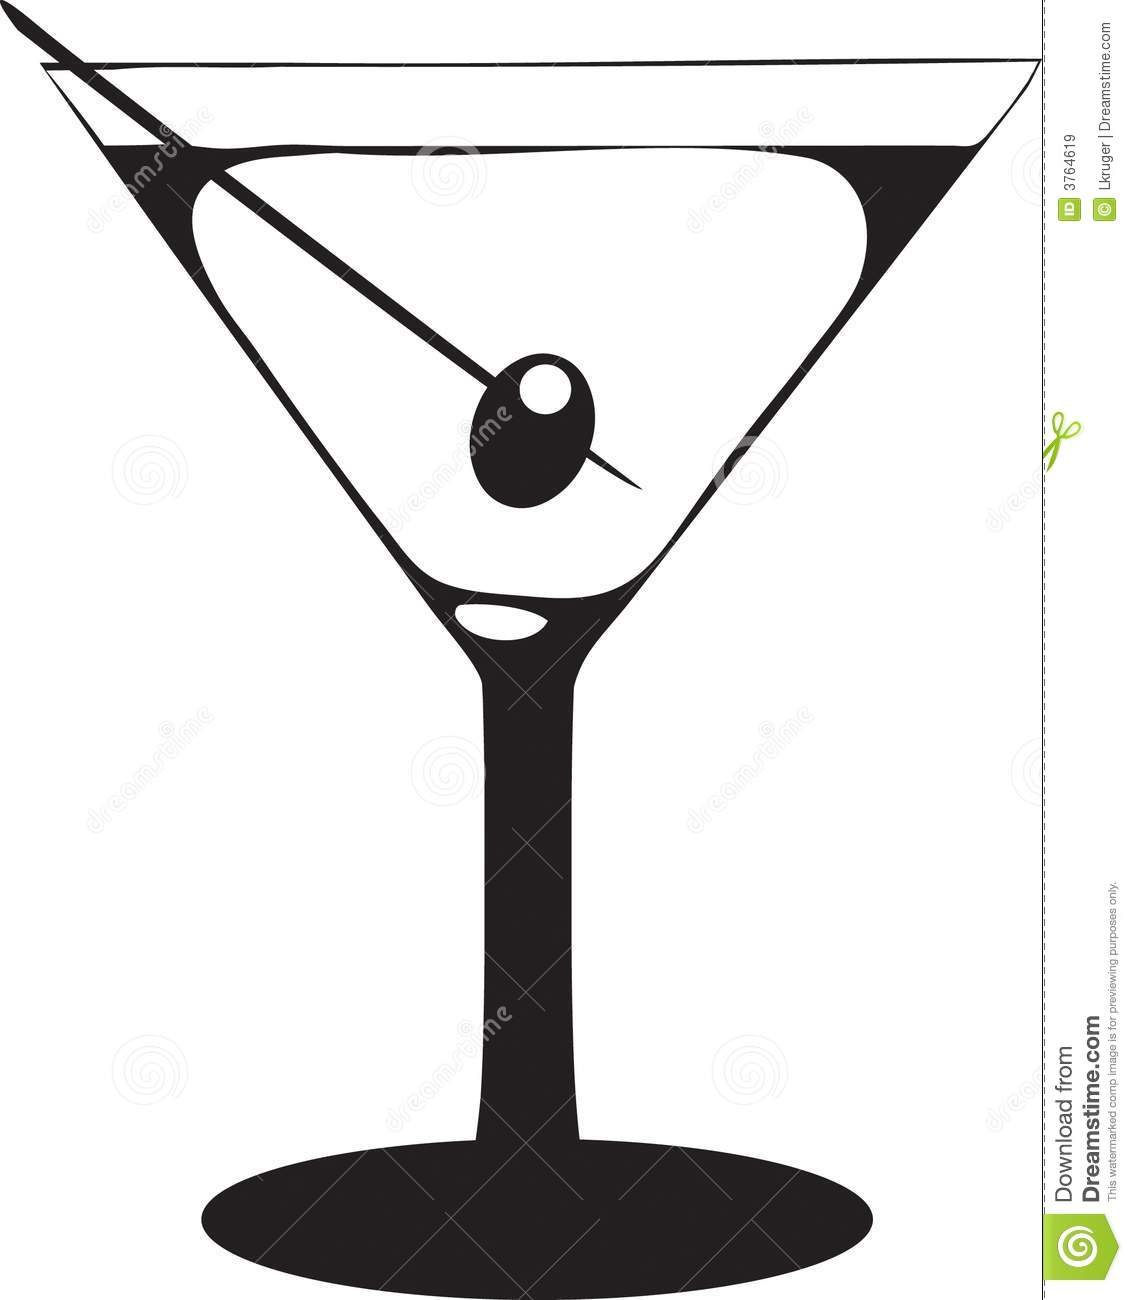 Whit clipart martini glass  Of Collection glass Clipart